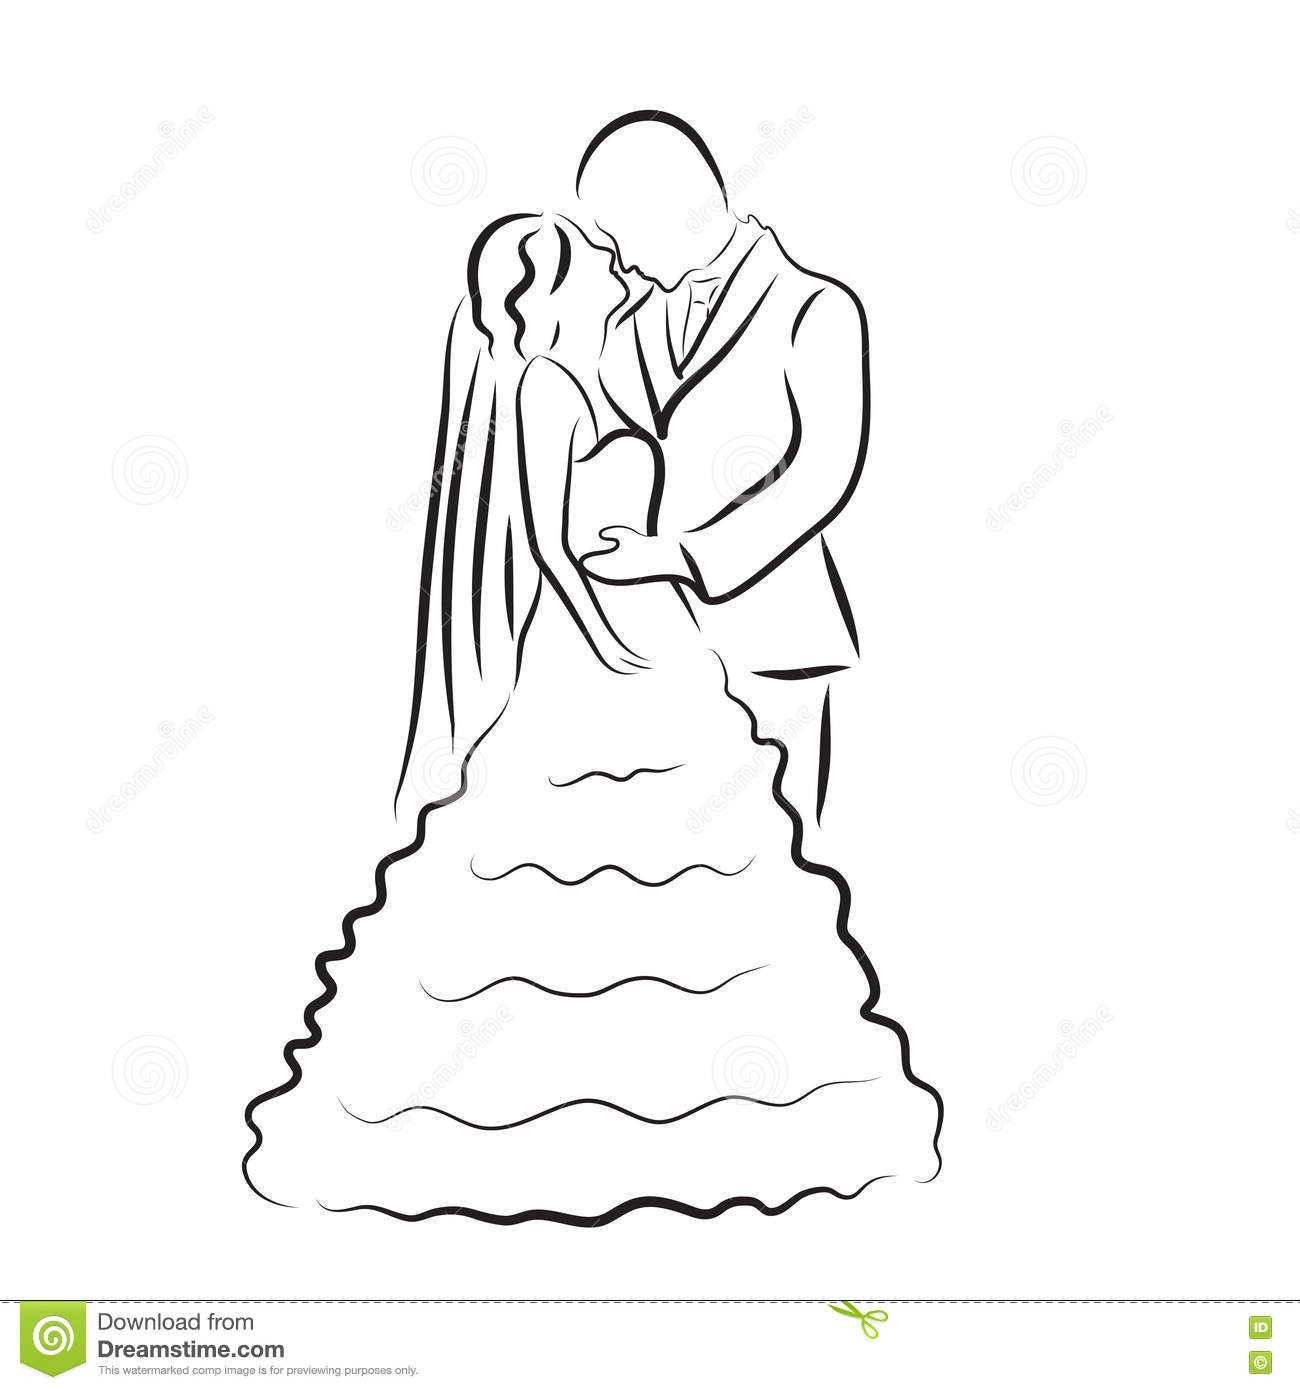 Line Art Wedding : Silhouette of bride and groom newlyweds sketch hand